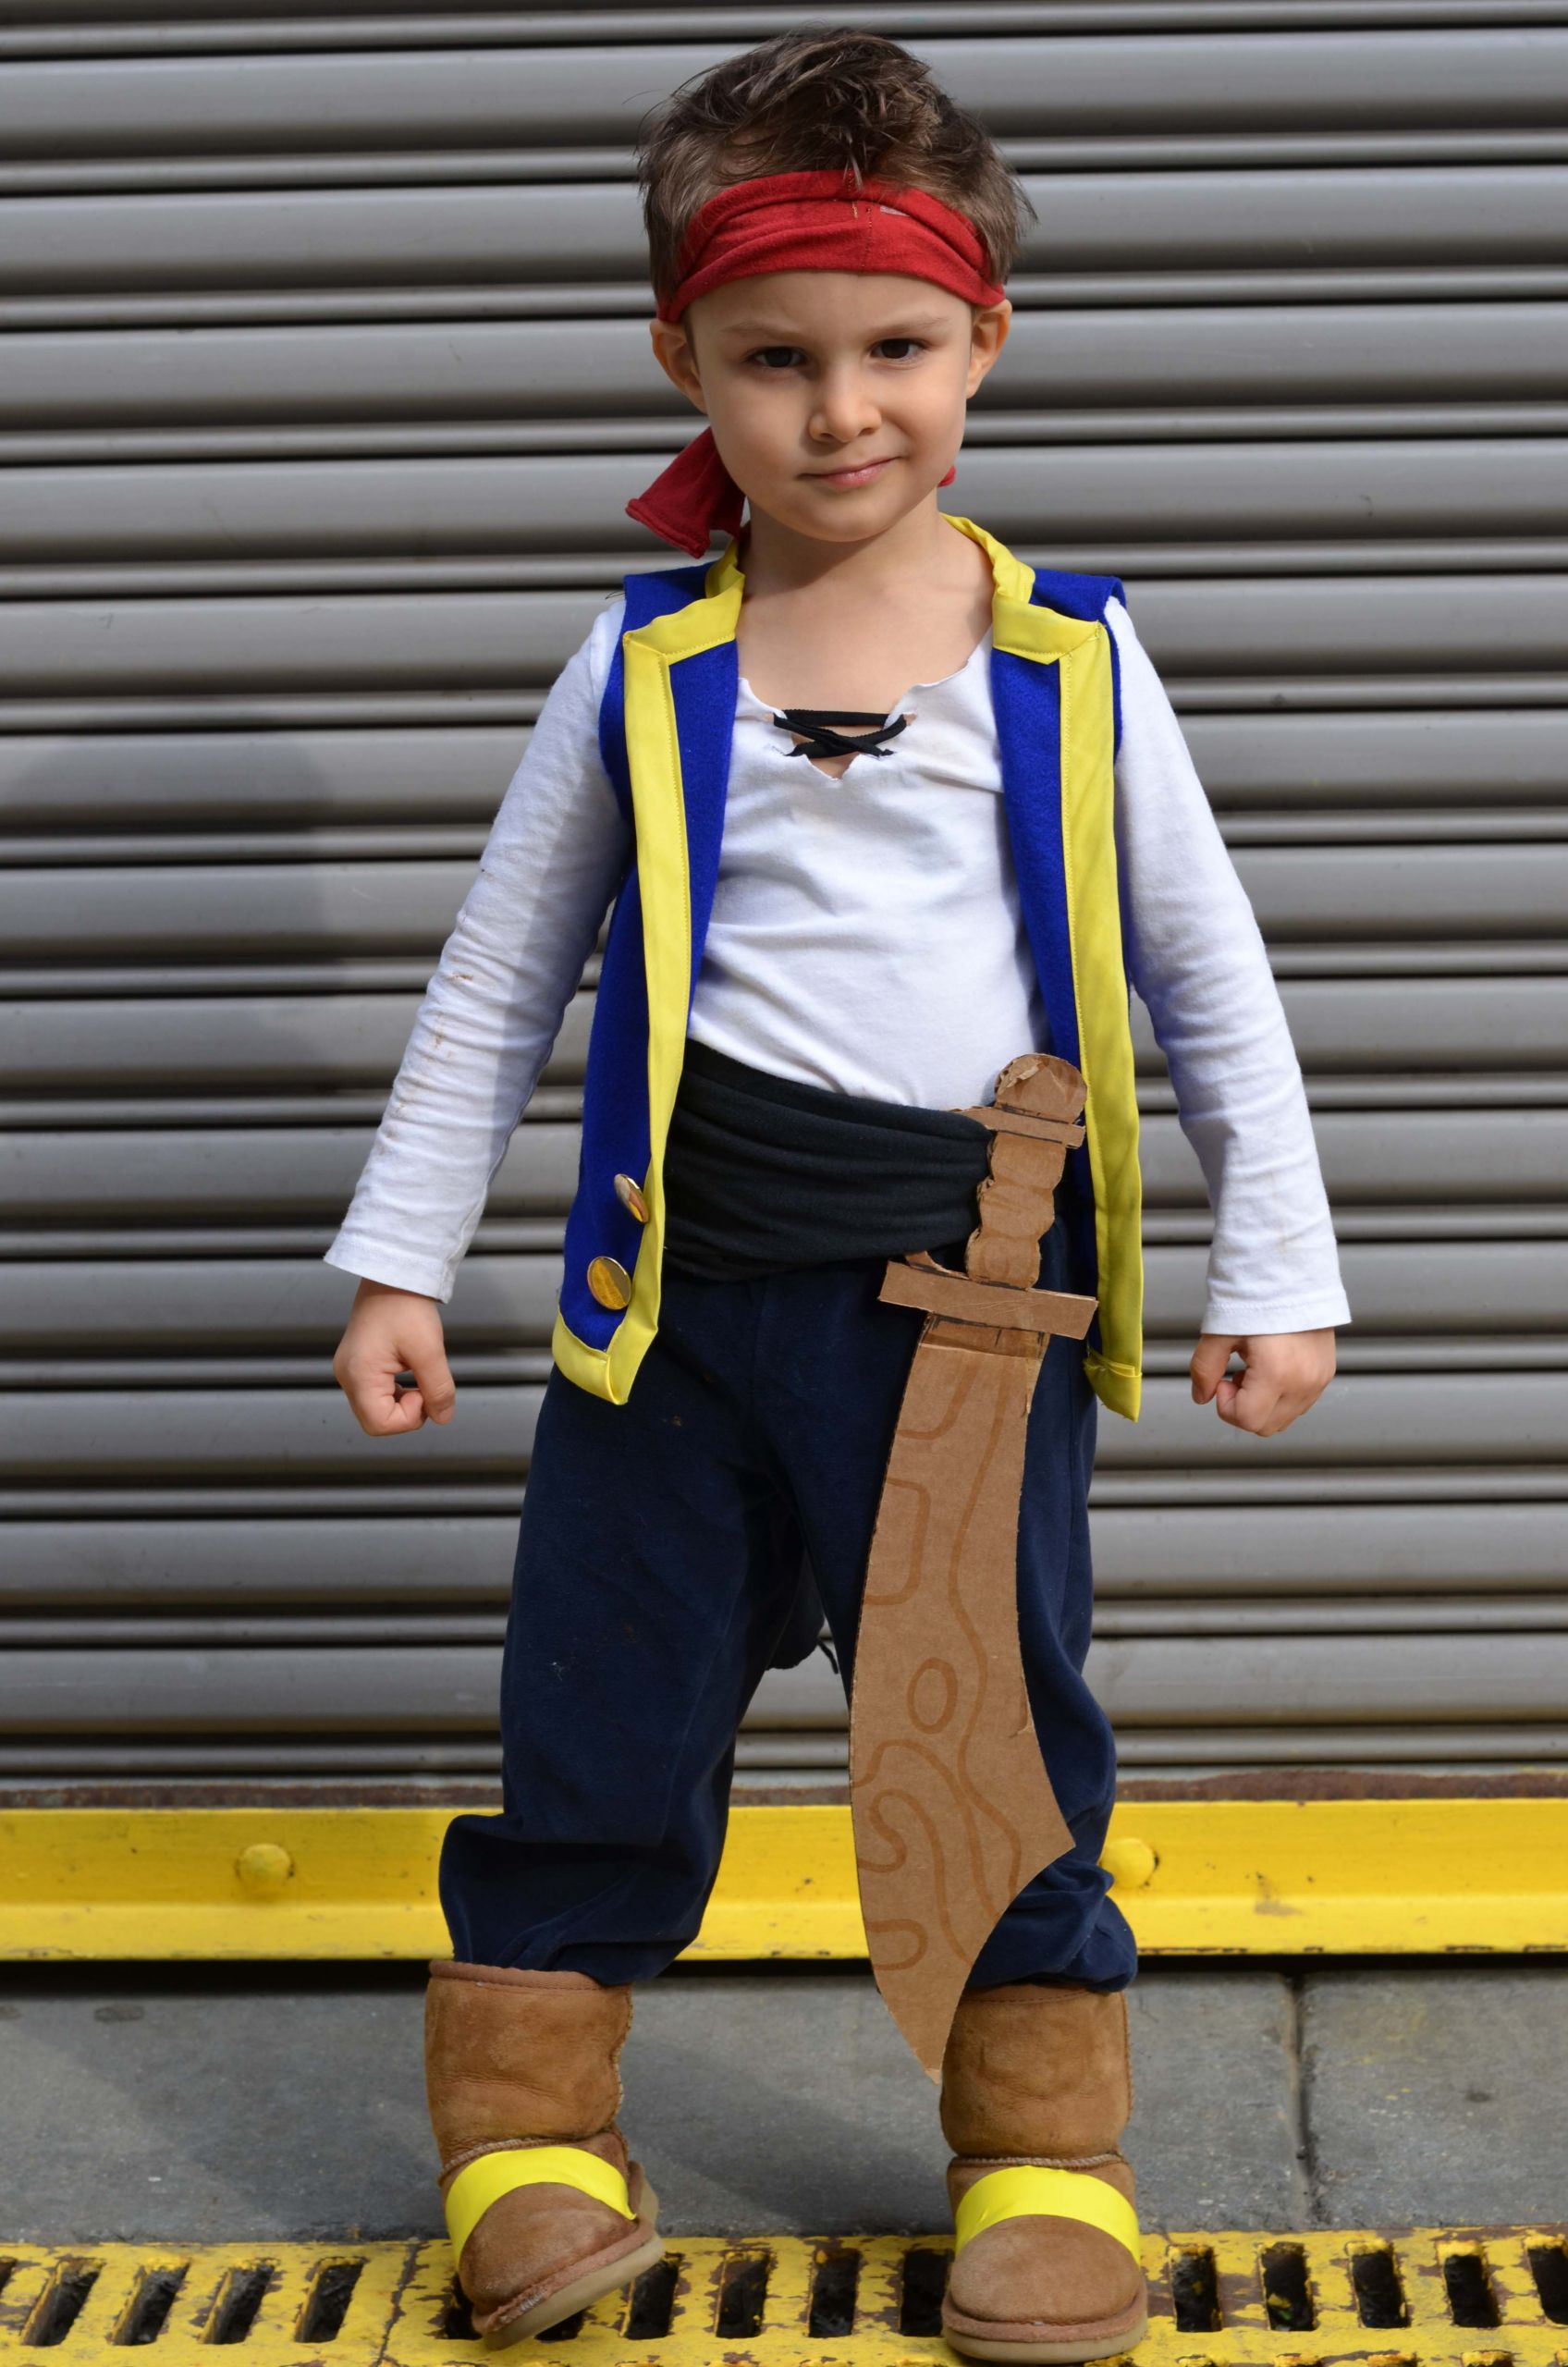 DIY Pirate Costumes For Kids  DIY Jake and The Never Land Pirates Costume